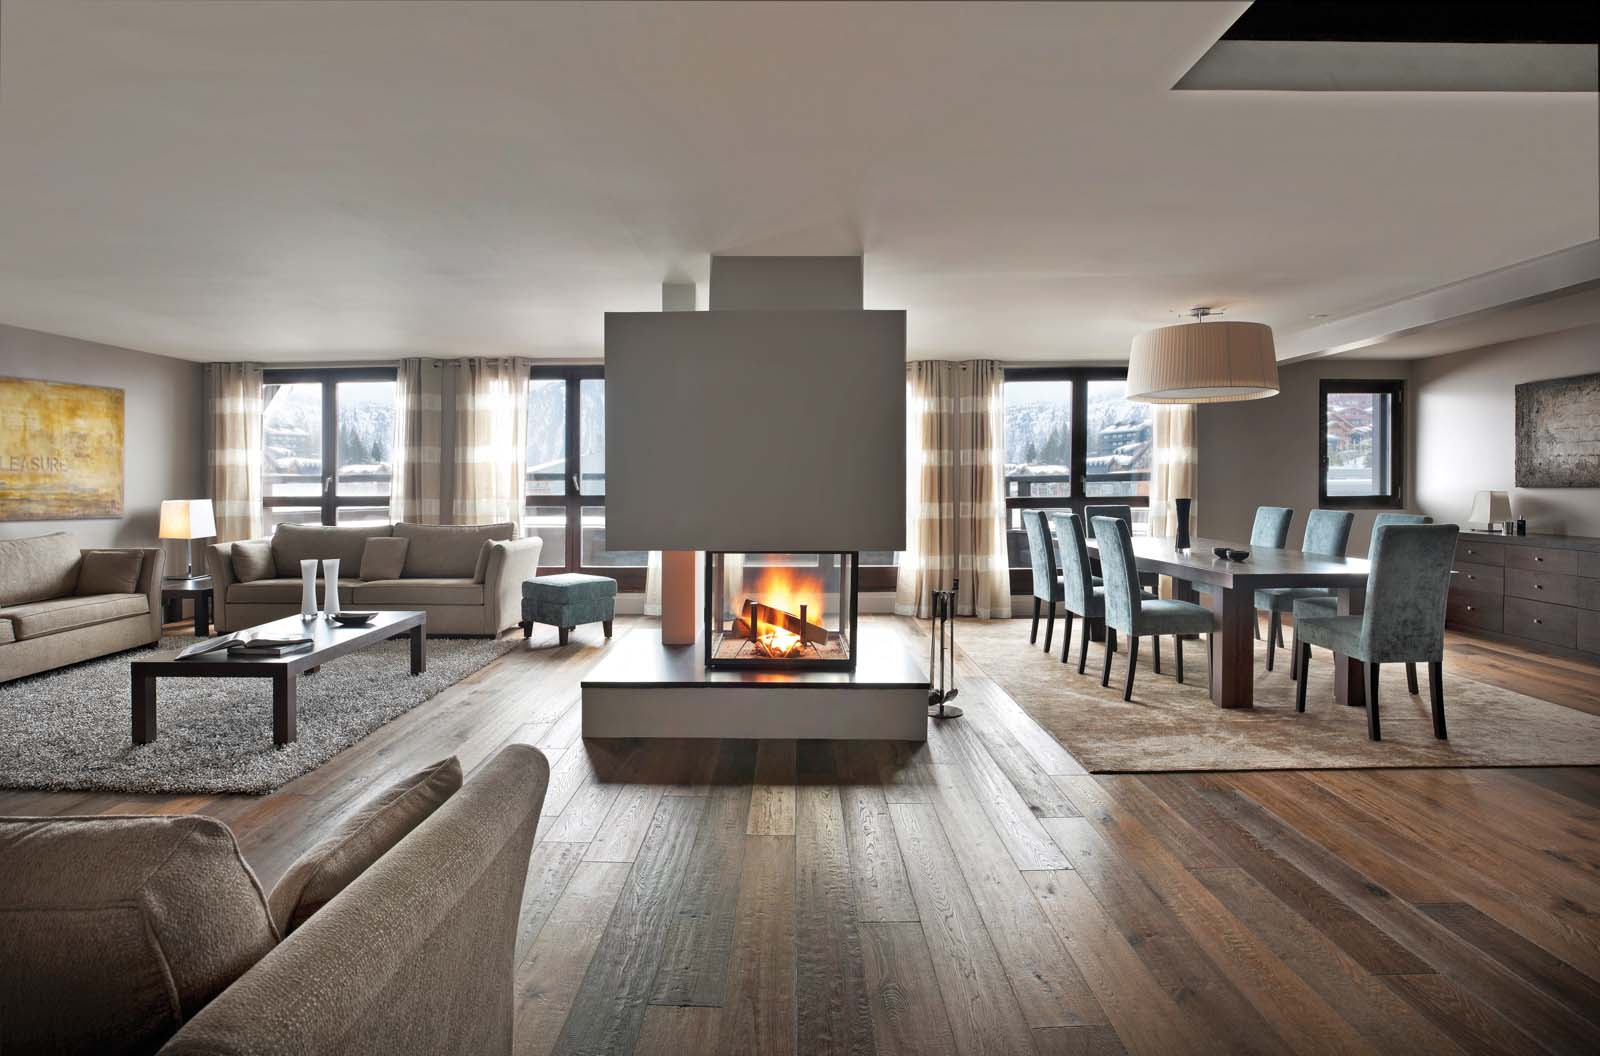 le penthouse in courchevel 1850 by skiboutique. Black Bedroom Furniture Sets. Home Design Ideas